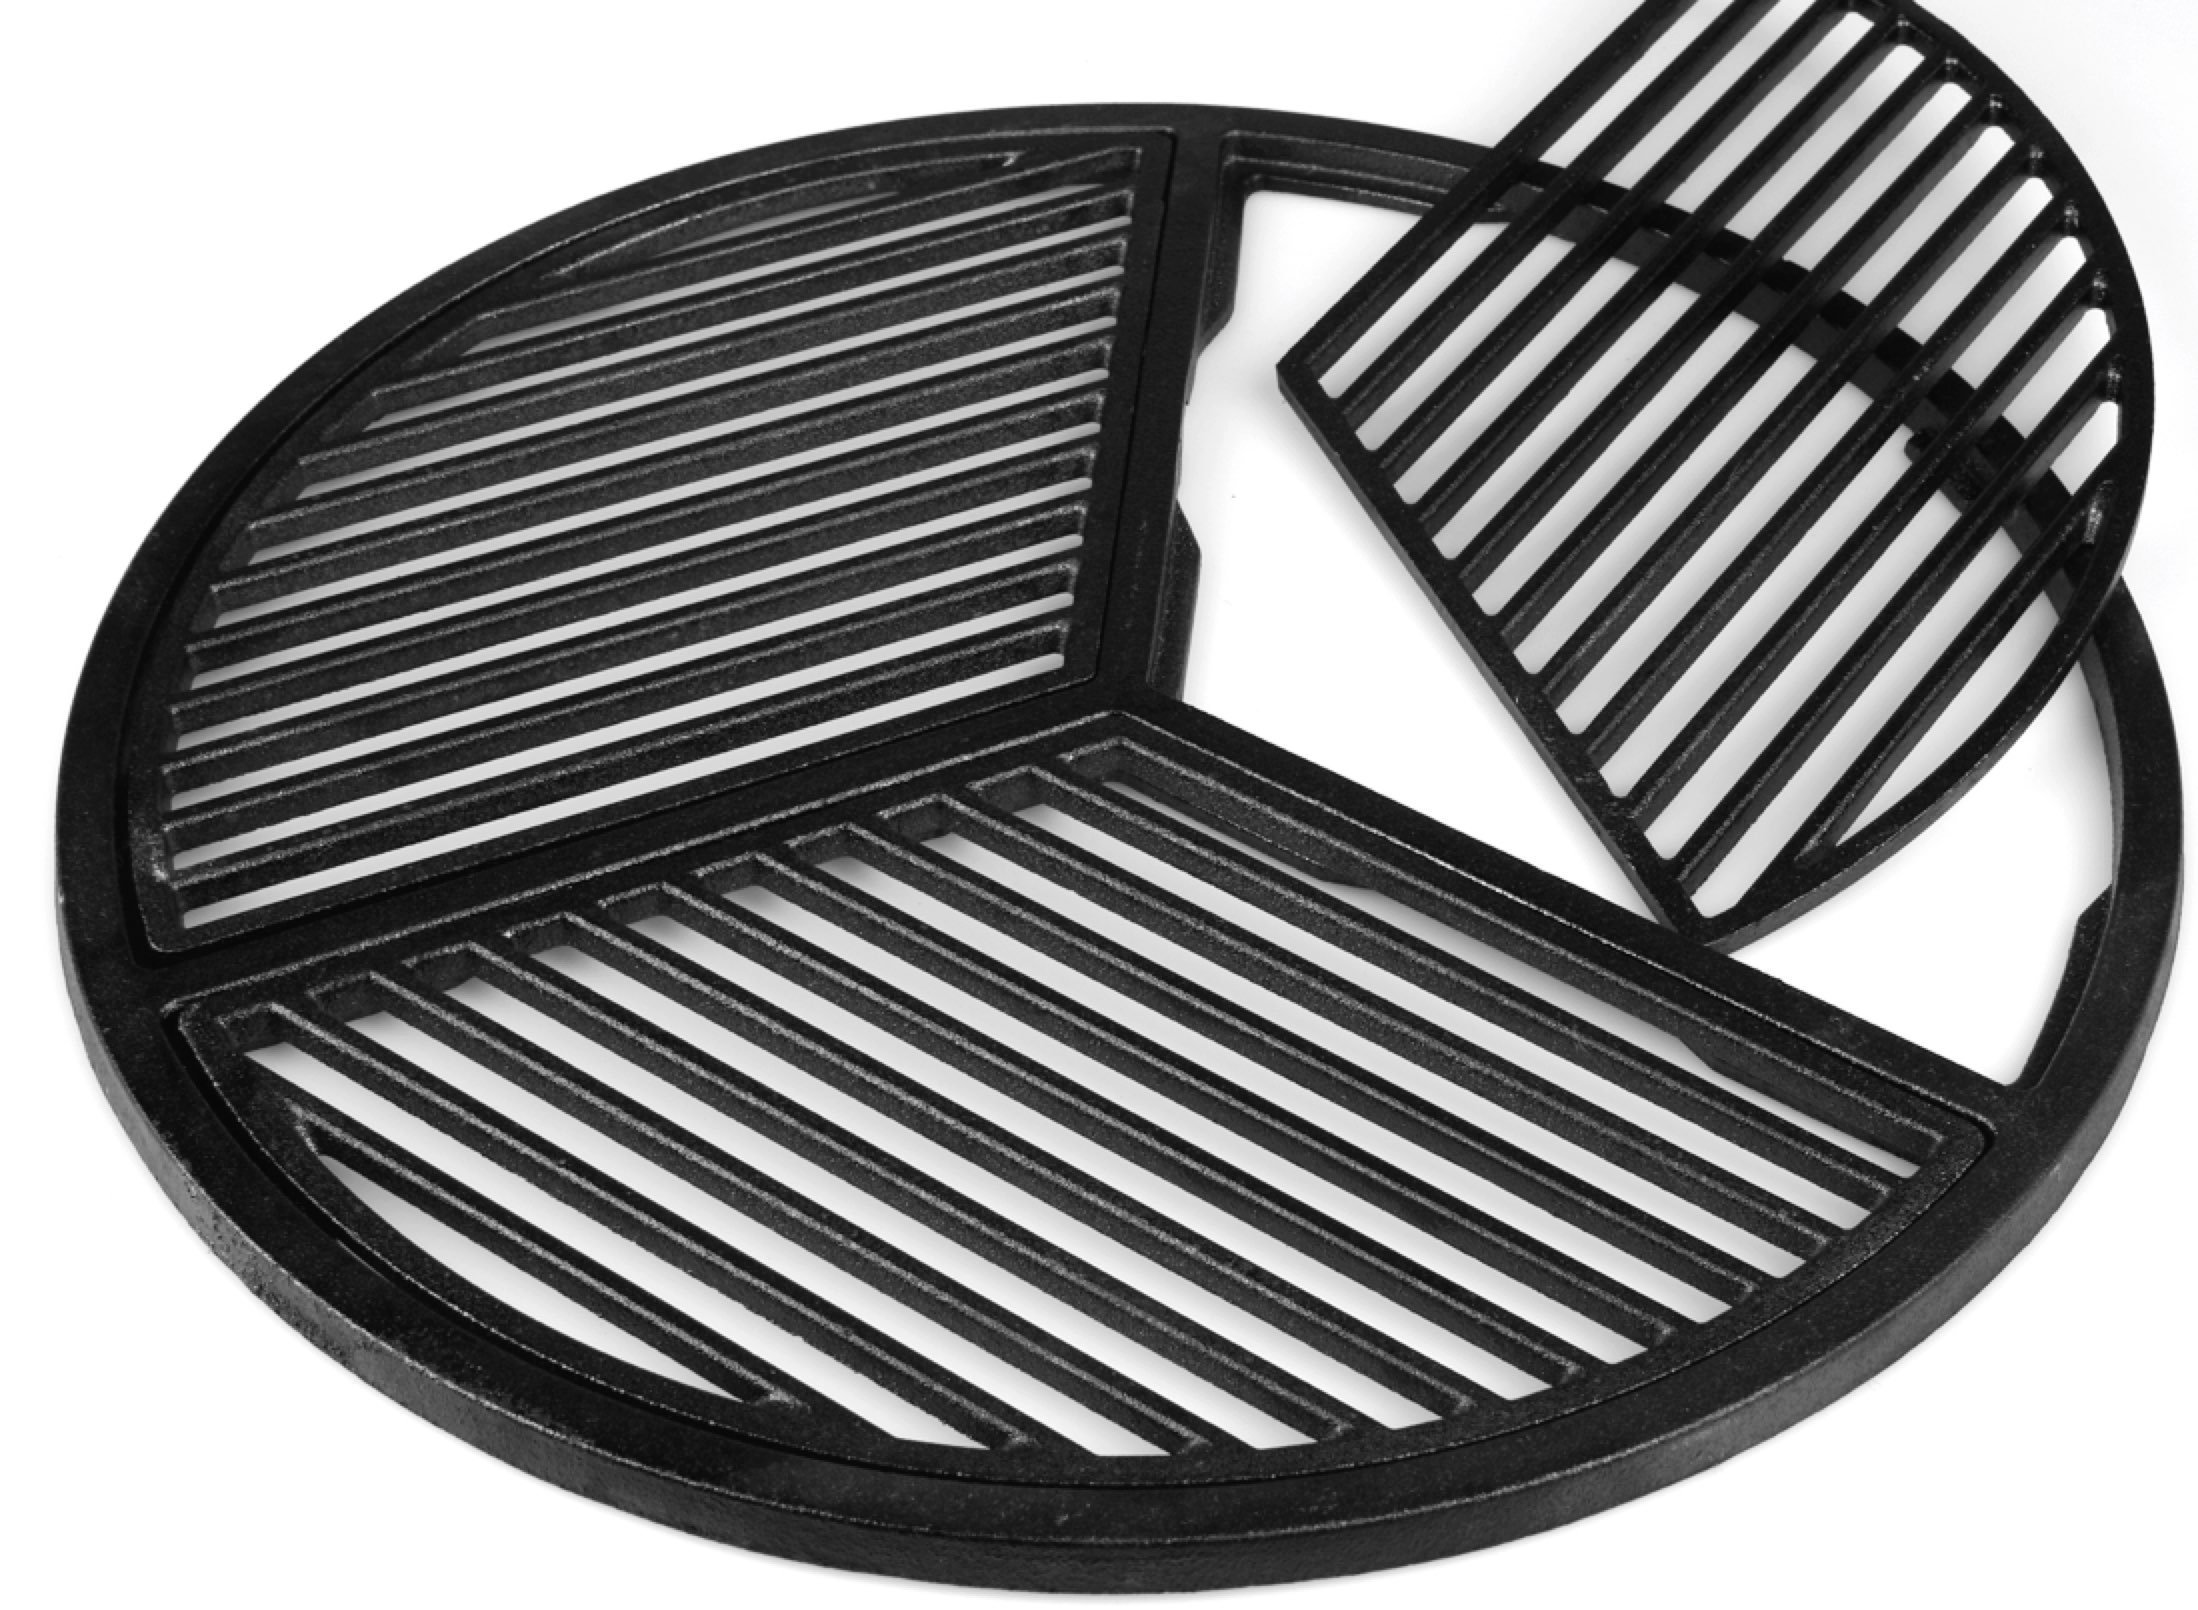 Cast Iron Grate, Pre Seasoned, Modular, Fits 18.5'' Grills and Large Big Green Eggs by Craycort